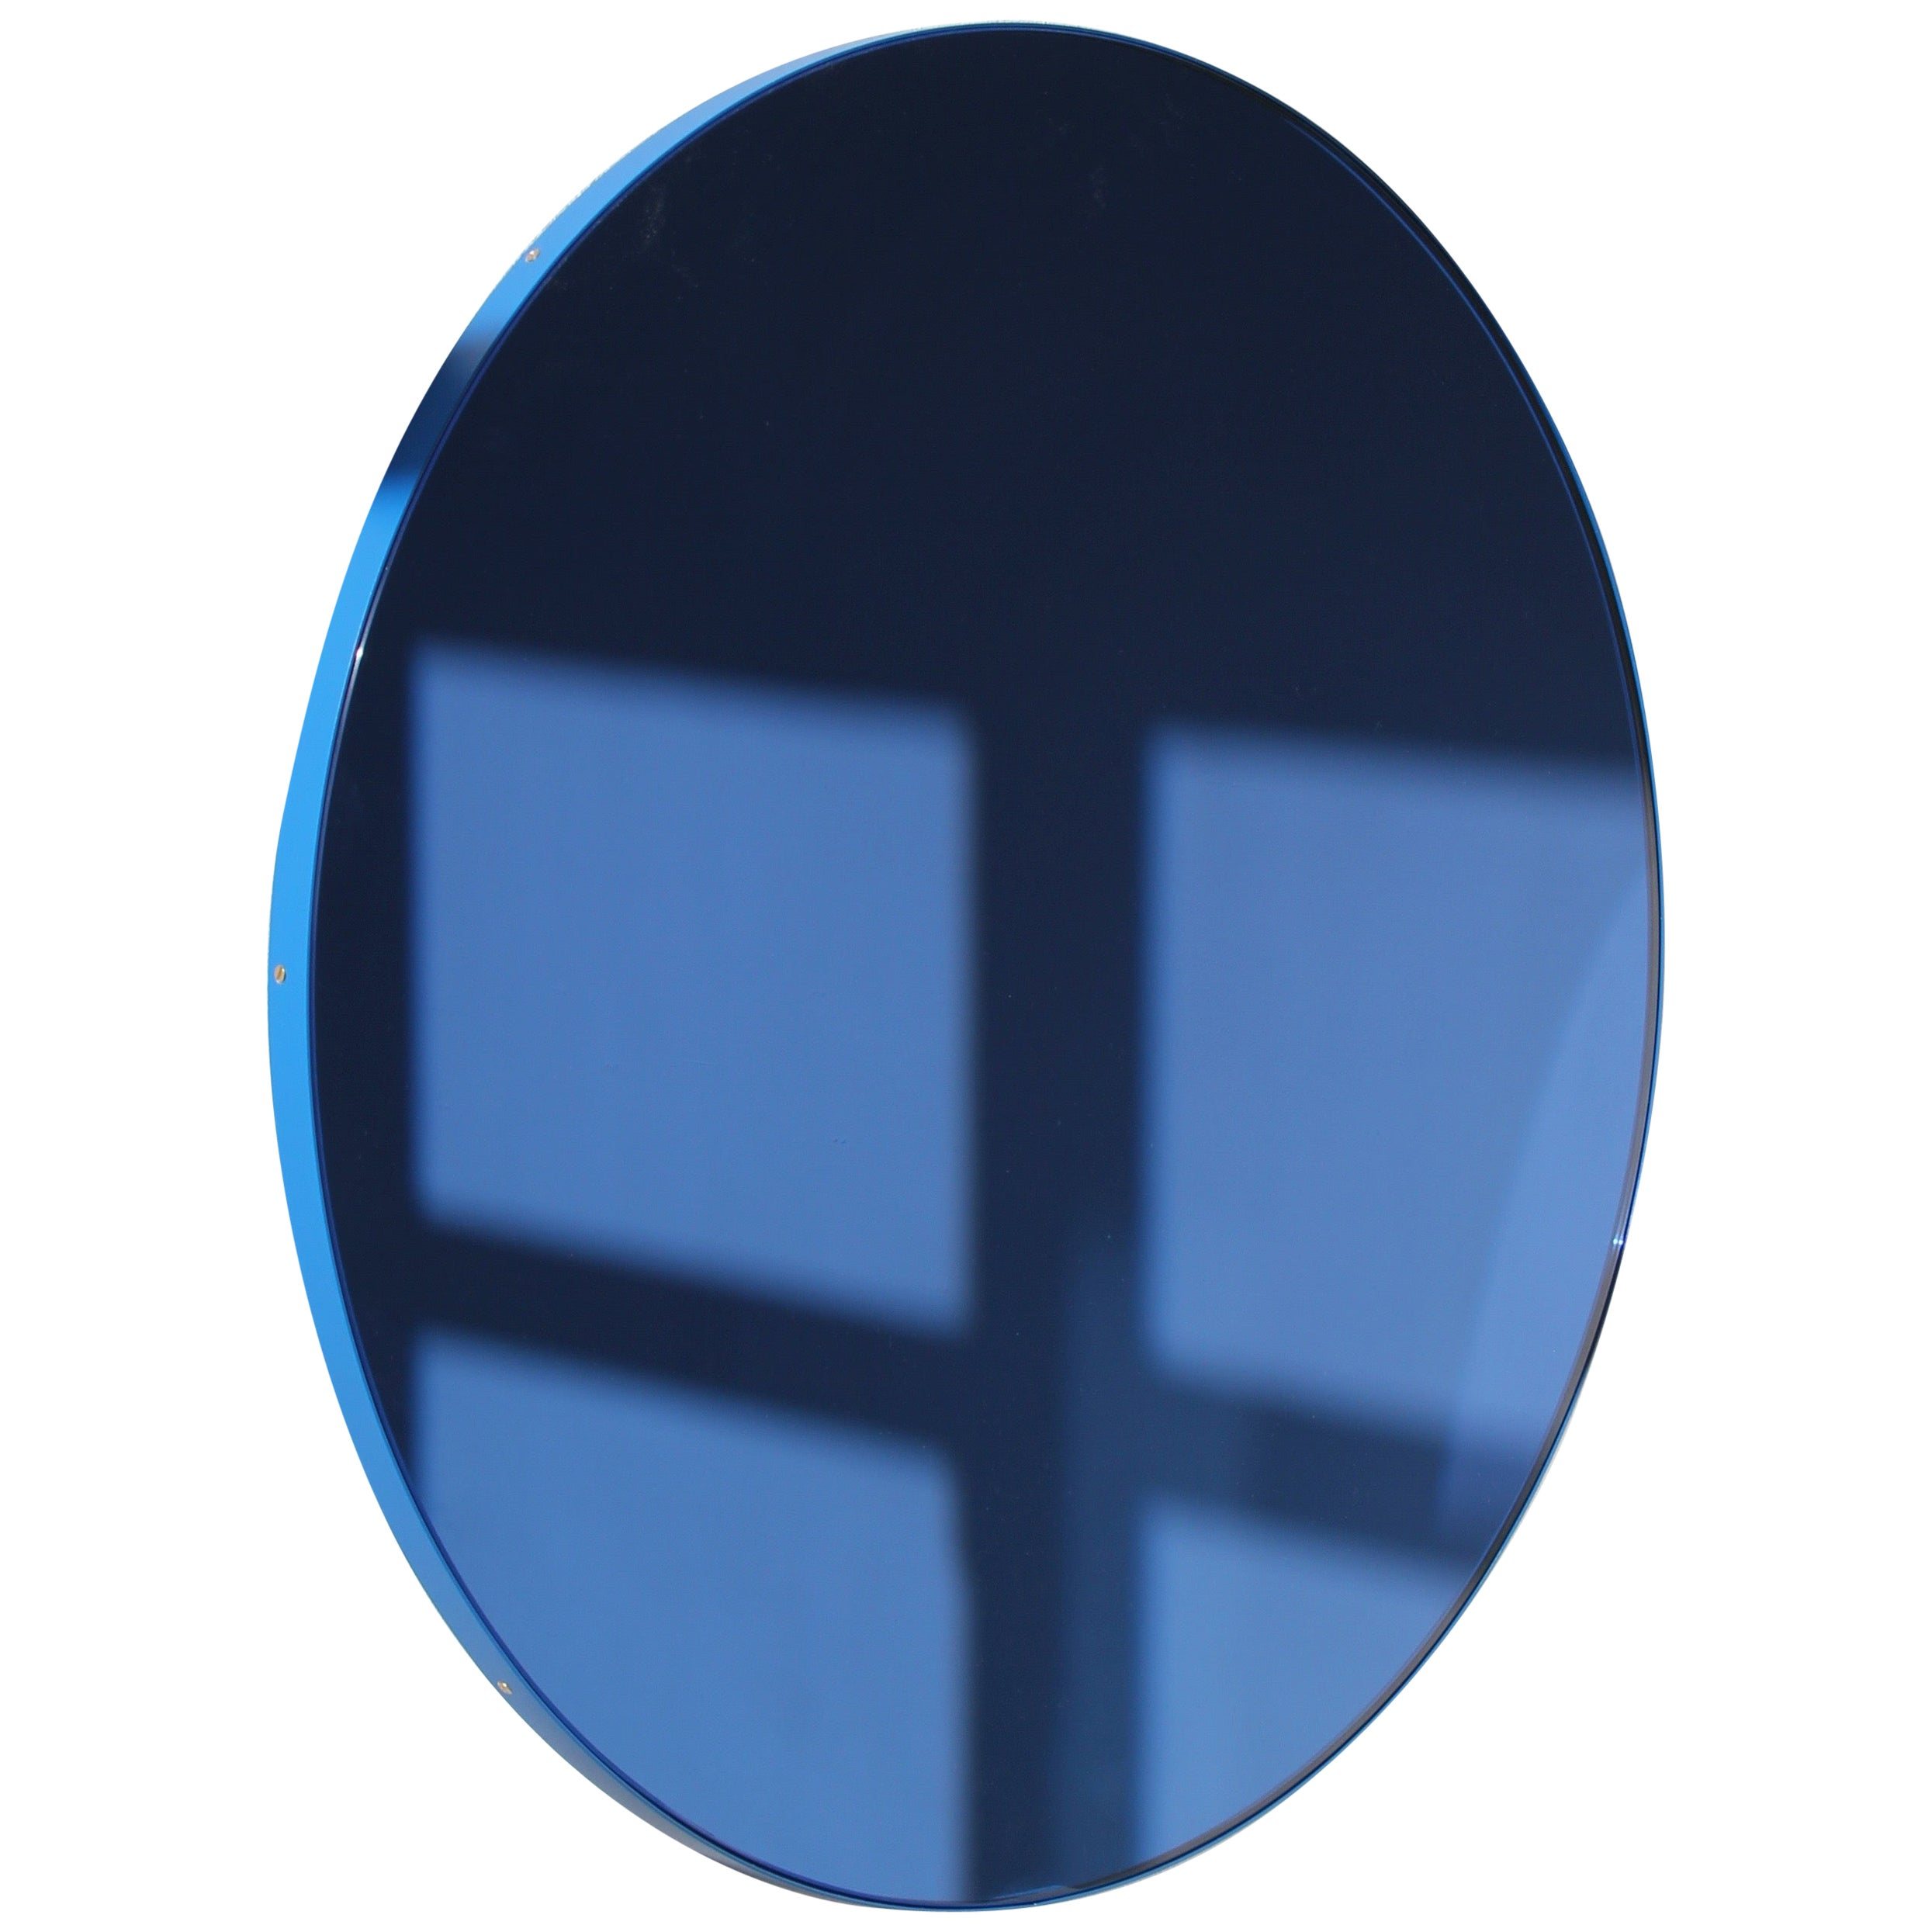 Orbis™ Blue Tinted Bespoke Round Mirror with a Blue Frame - Small